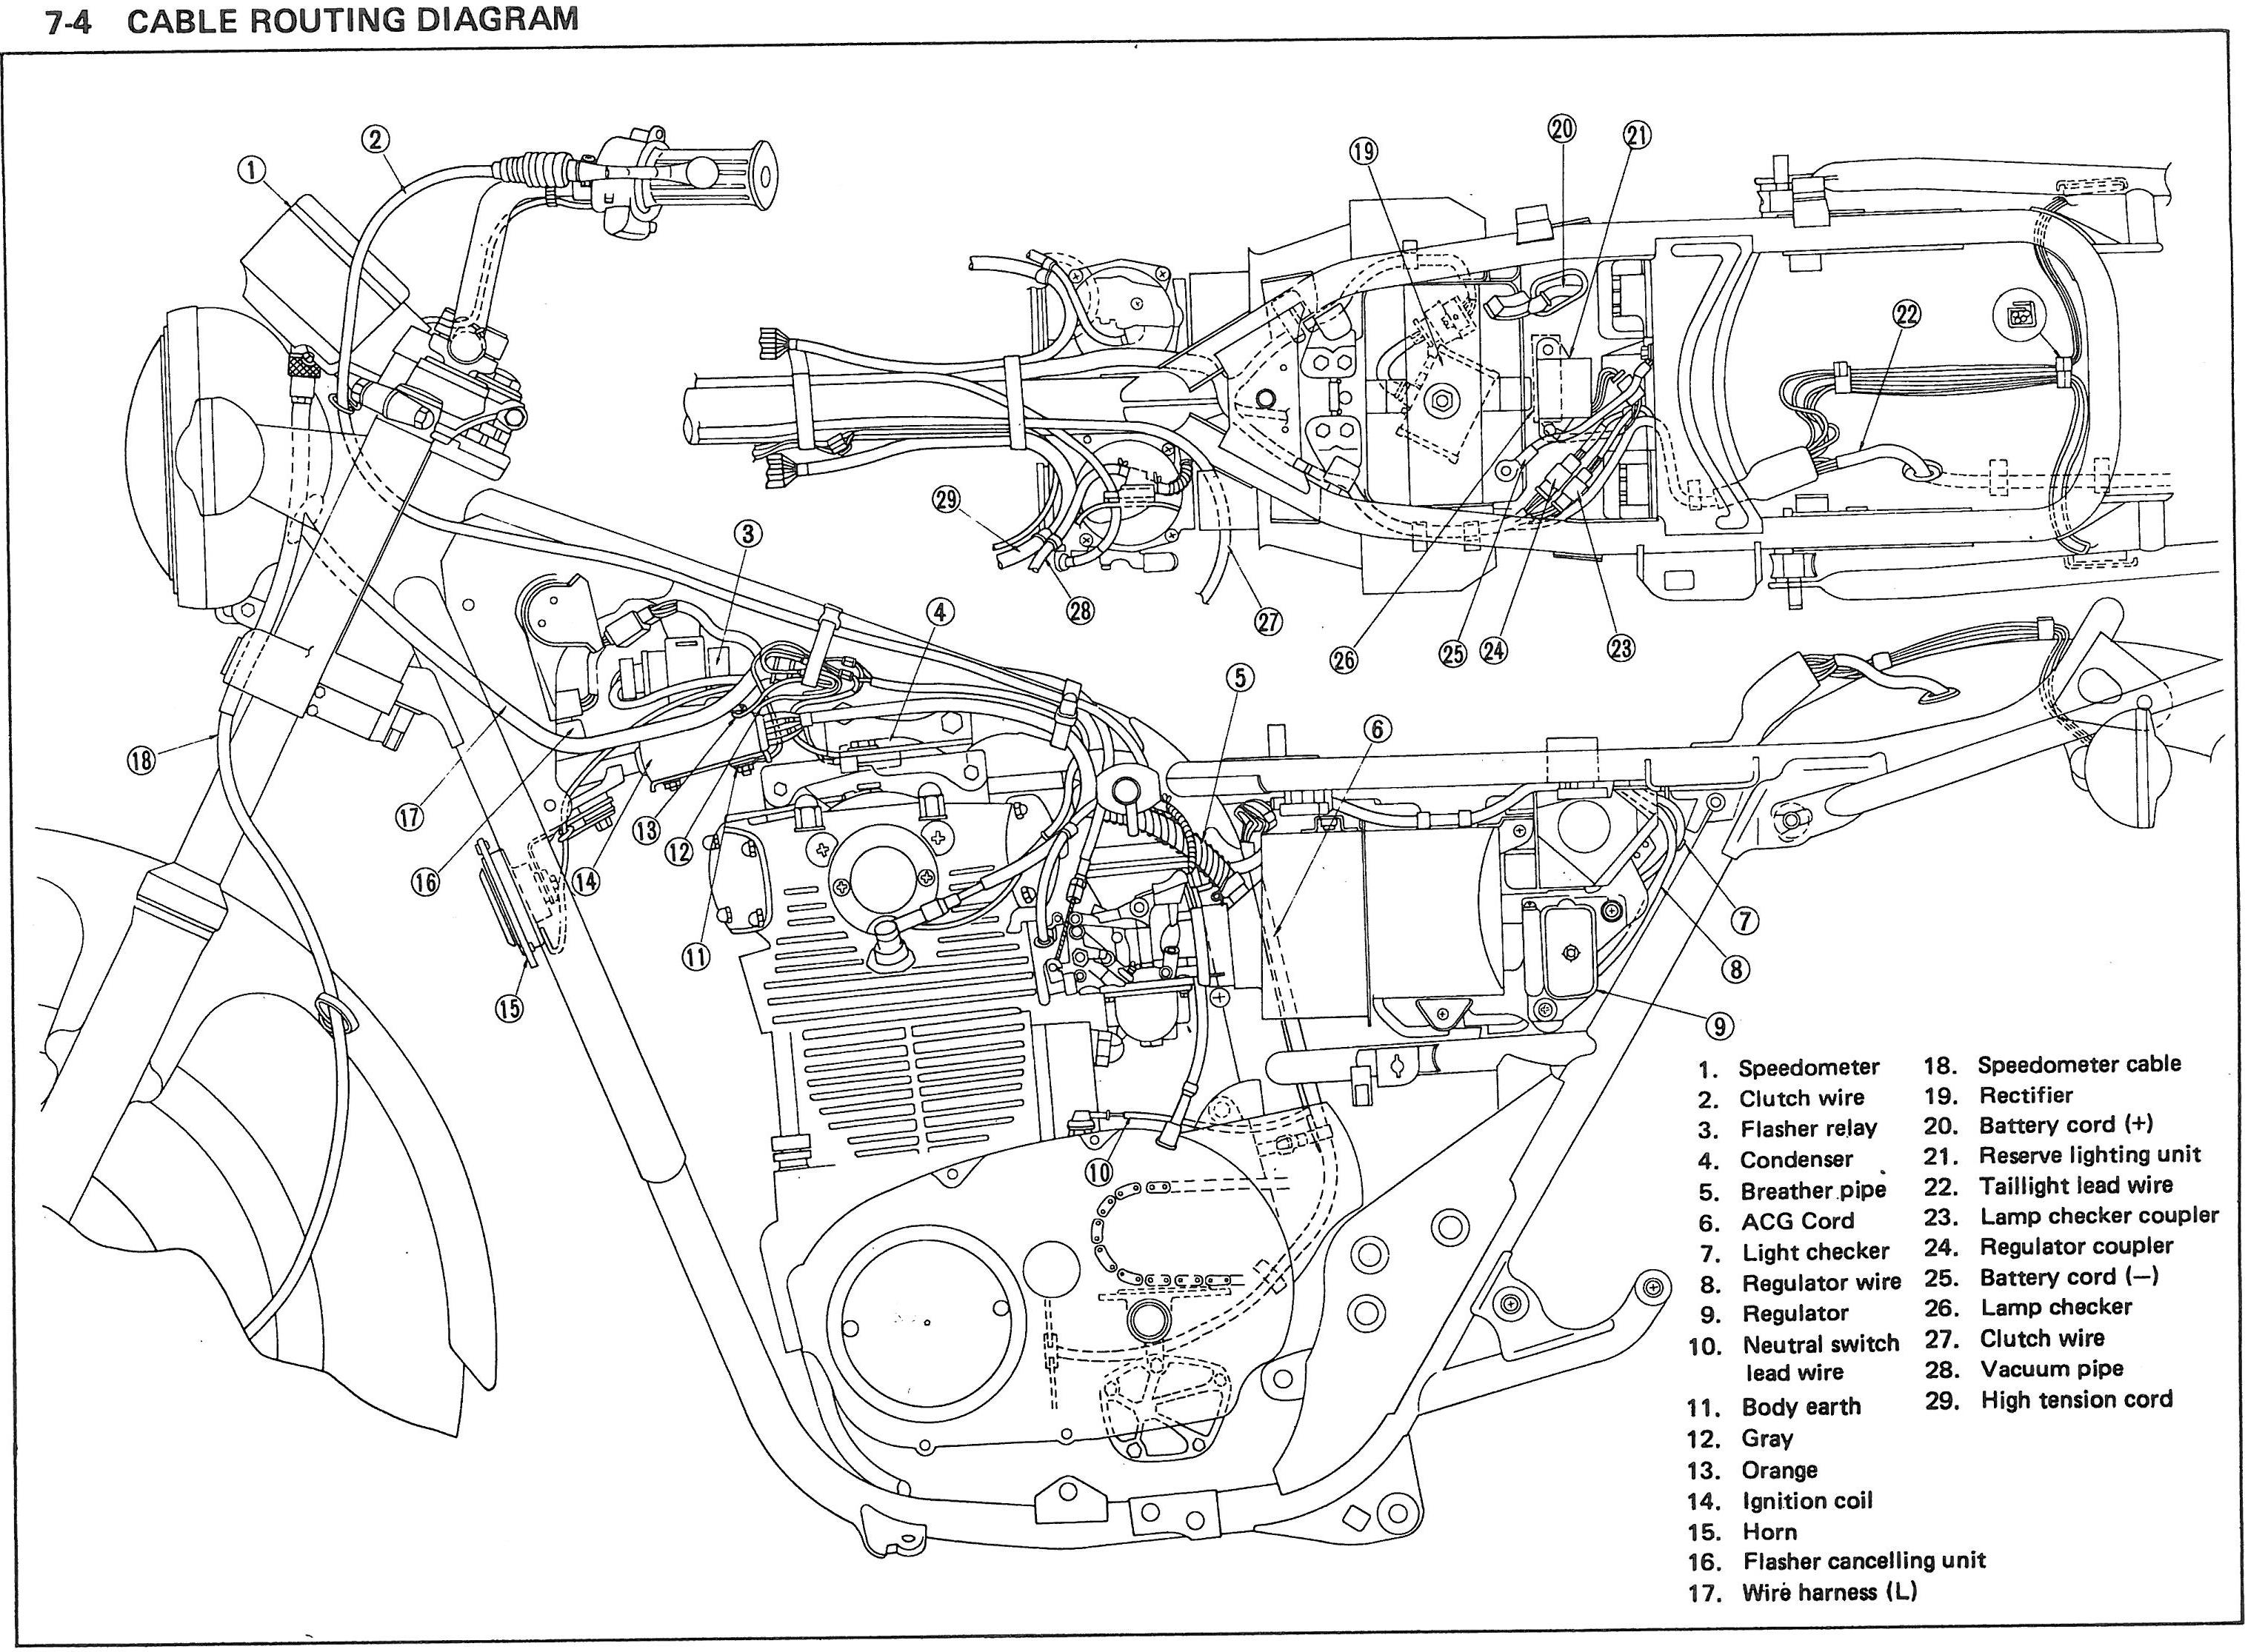 1981 corvette engine diagram xs650: 78 xs e/se wiring | thexscafe 1981 xs650 engine diagram